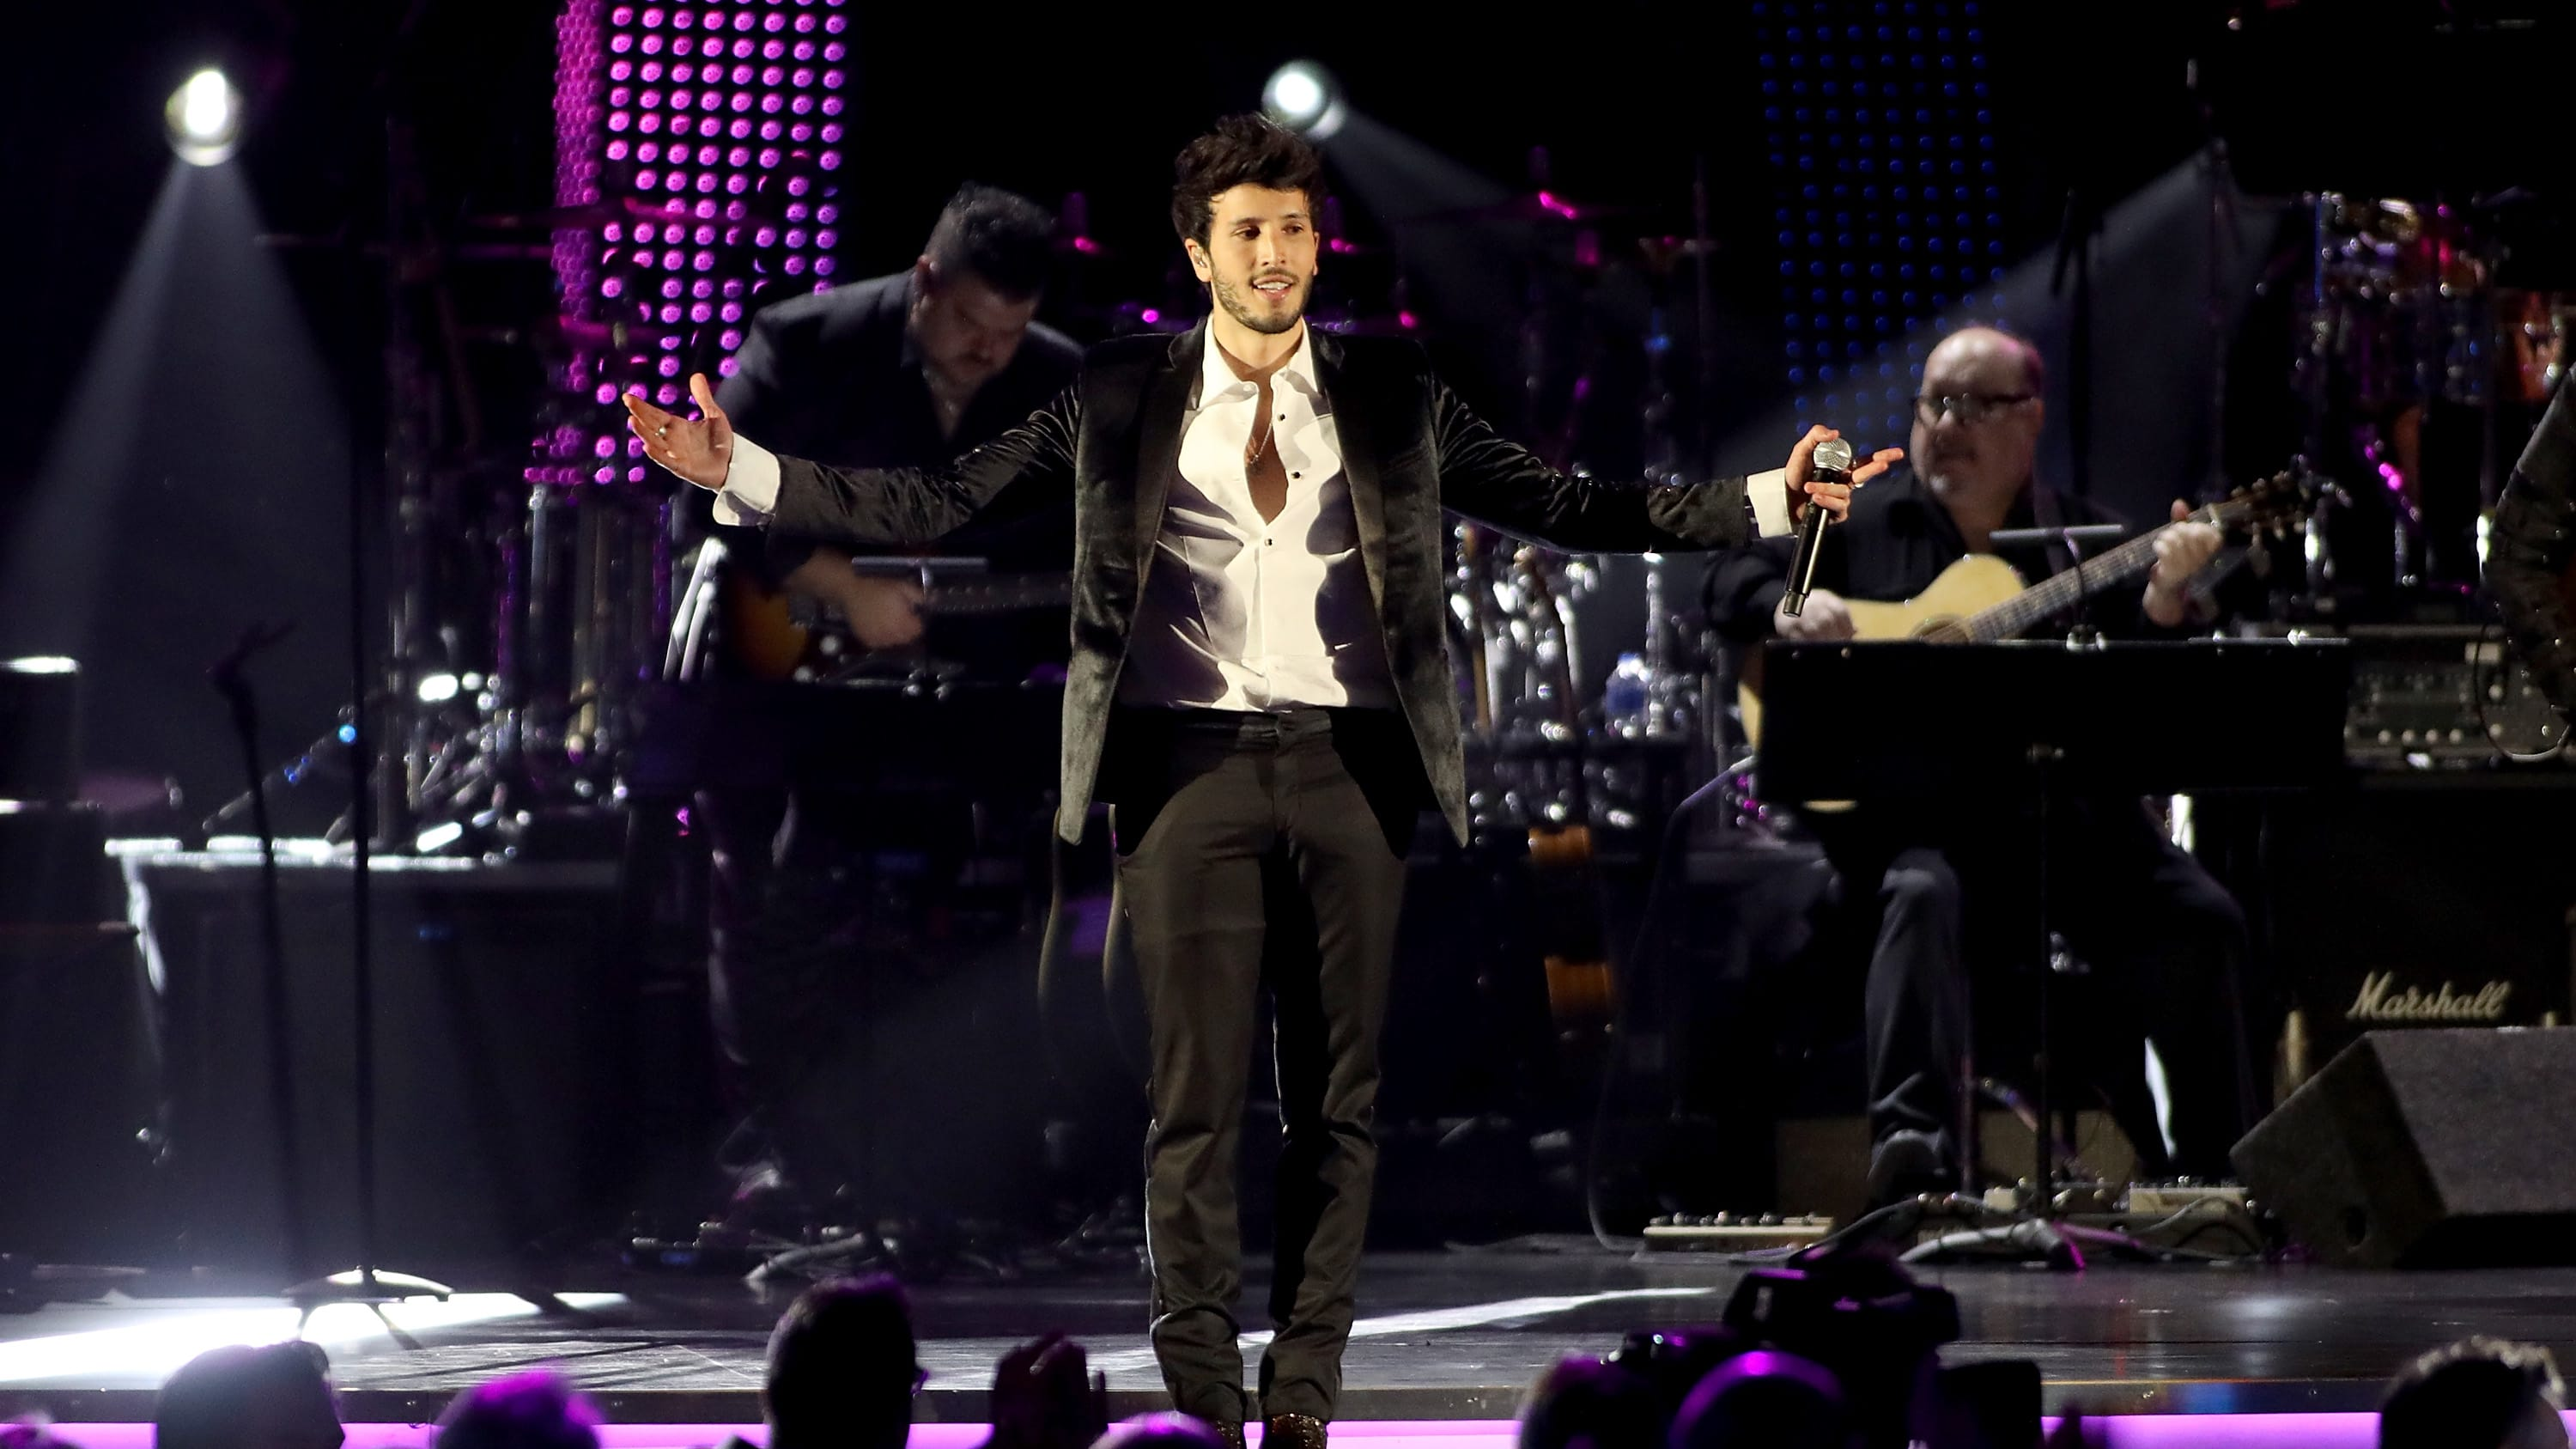 LAS VEGAS, NV - NOVEMBER 14:  Sebastian Yatra performs onstage at the Latin Recording Academy's 2018 Person of the Year gala honoring Mana at the Mandalay Bay Events Center on November 14, 2018 in Las Vegas, Nevada.  (Photo by Roger Kisby/Getty Images)